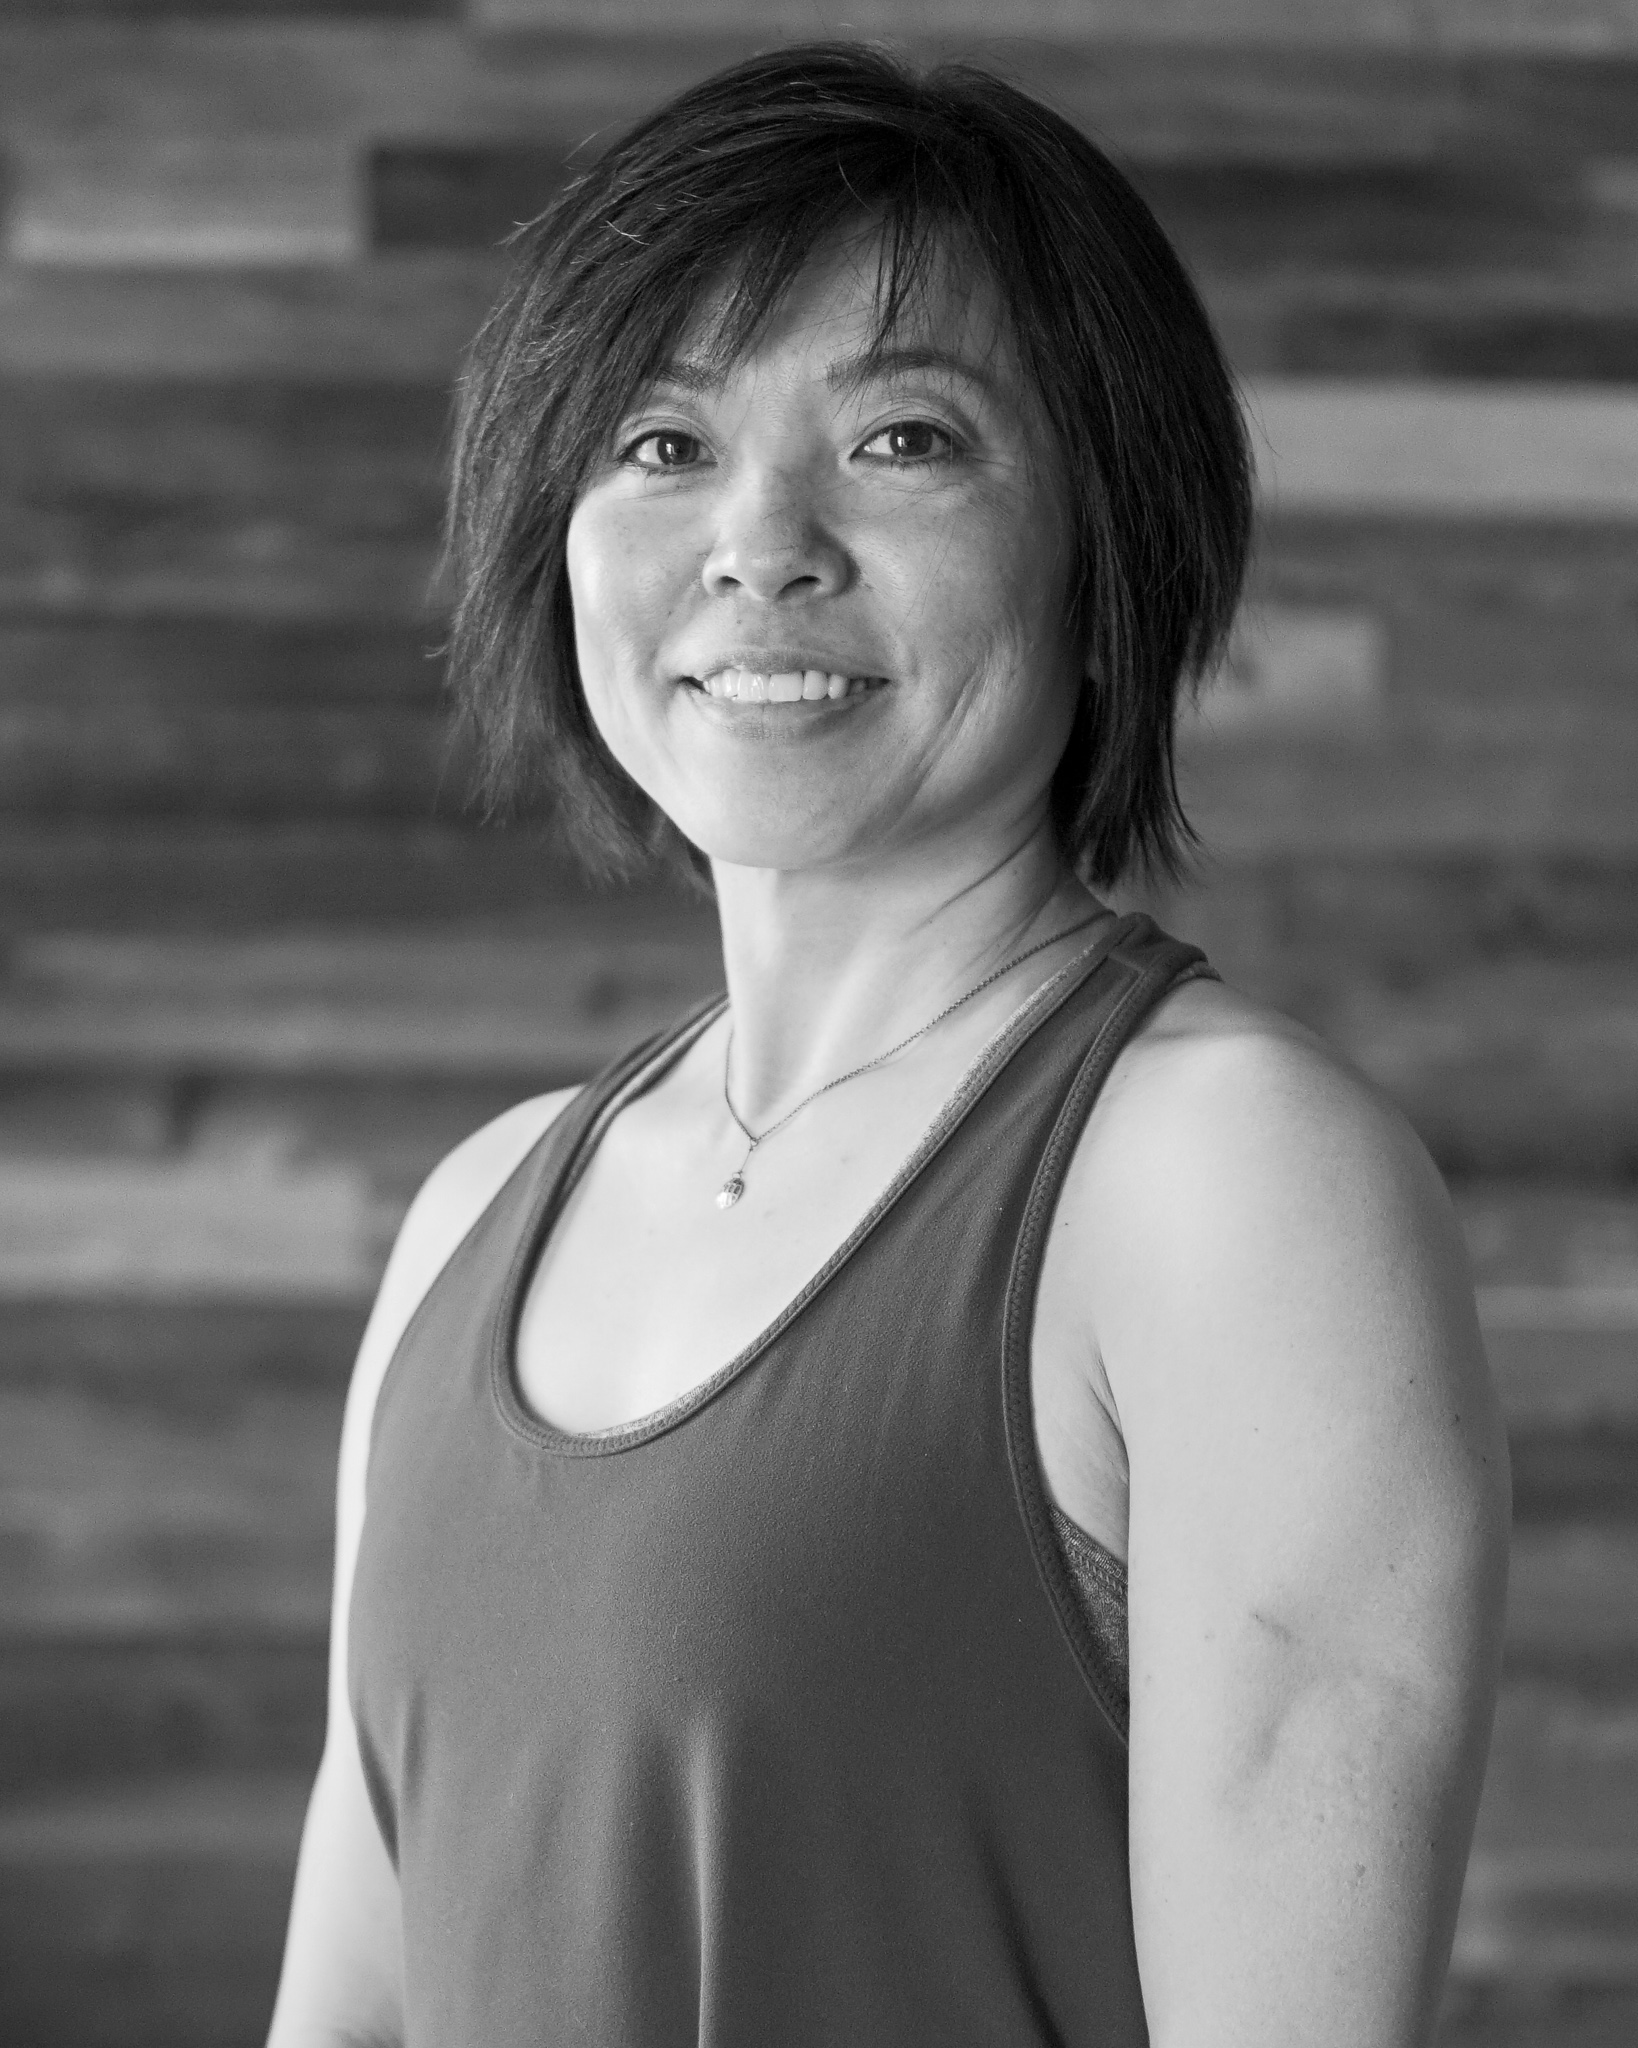 Mina Chong - Mina first started practicing yoga in 2005. She became a certified yoga instructor and has been teaching yoga since 2006. In her classes, you can expect creative, safe and effective exercises, and healing touch.Mina believes that anyone can practice yoga, and her classes are all about showing up, doing what you can, and enjoying healthy movement. Mina loves to share her time and be of service to others, she also loves to cook/bake, and enjoys the occasional binge watching shows on Netflix(it's all about balance).